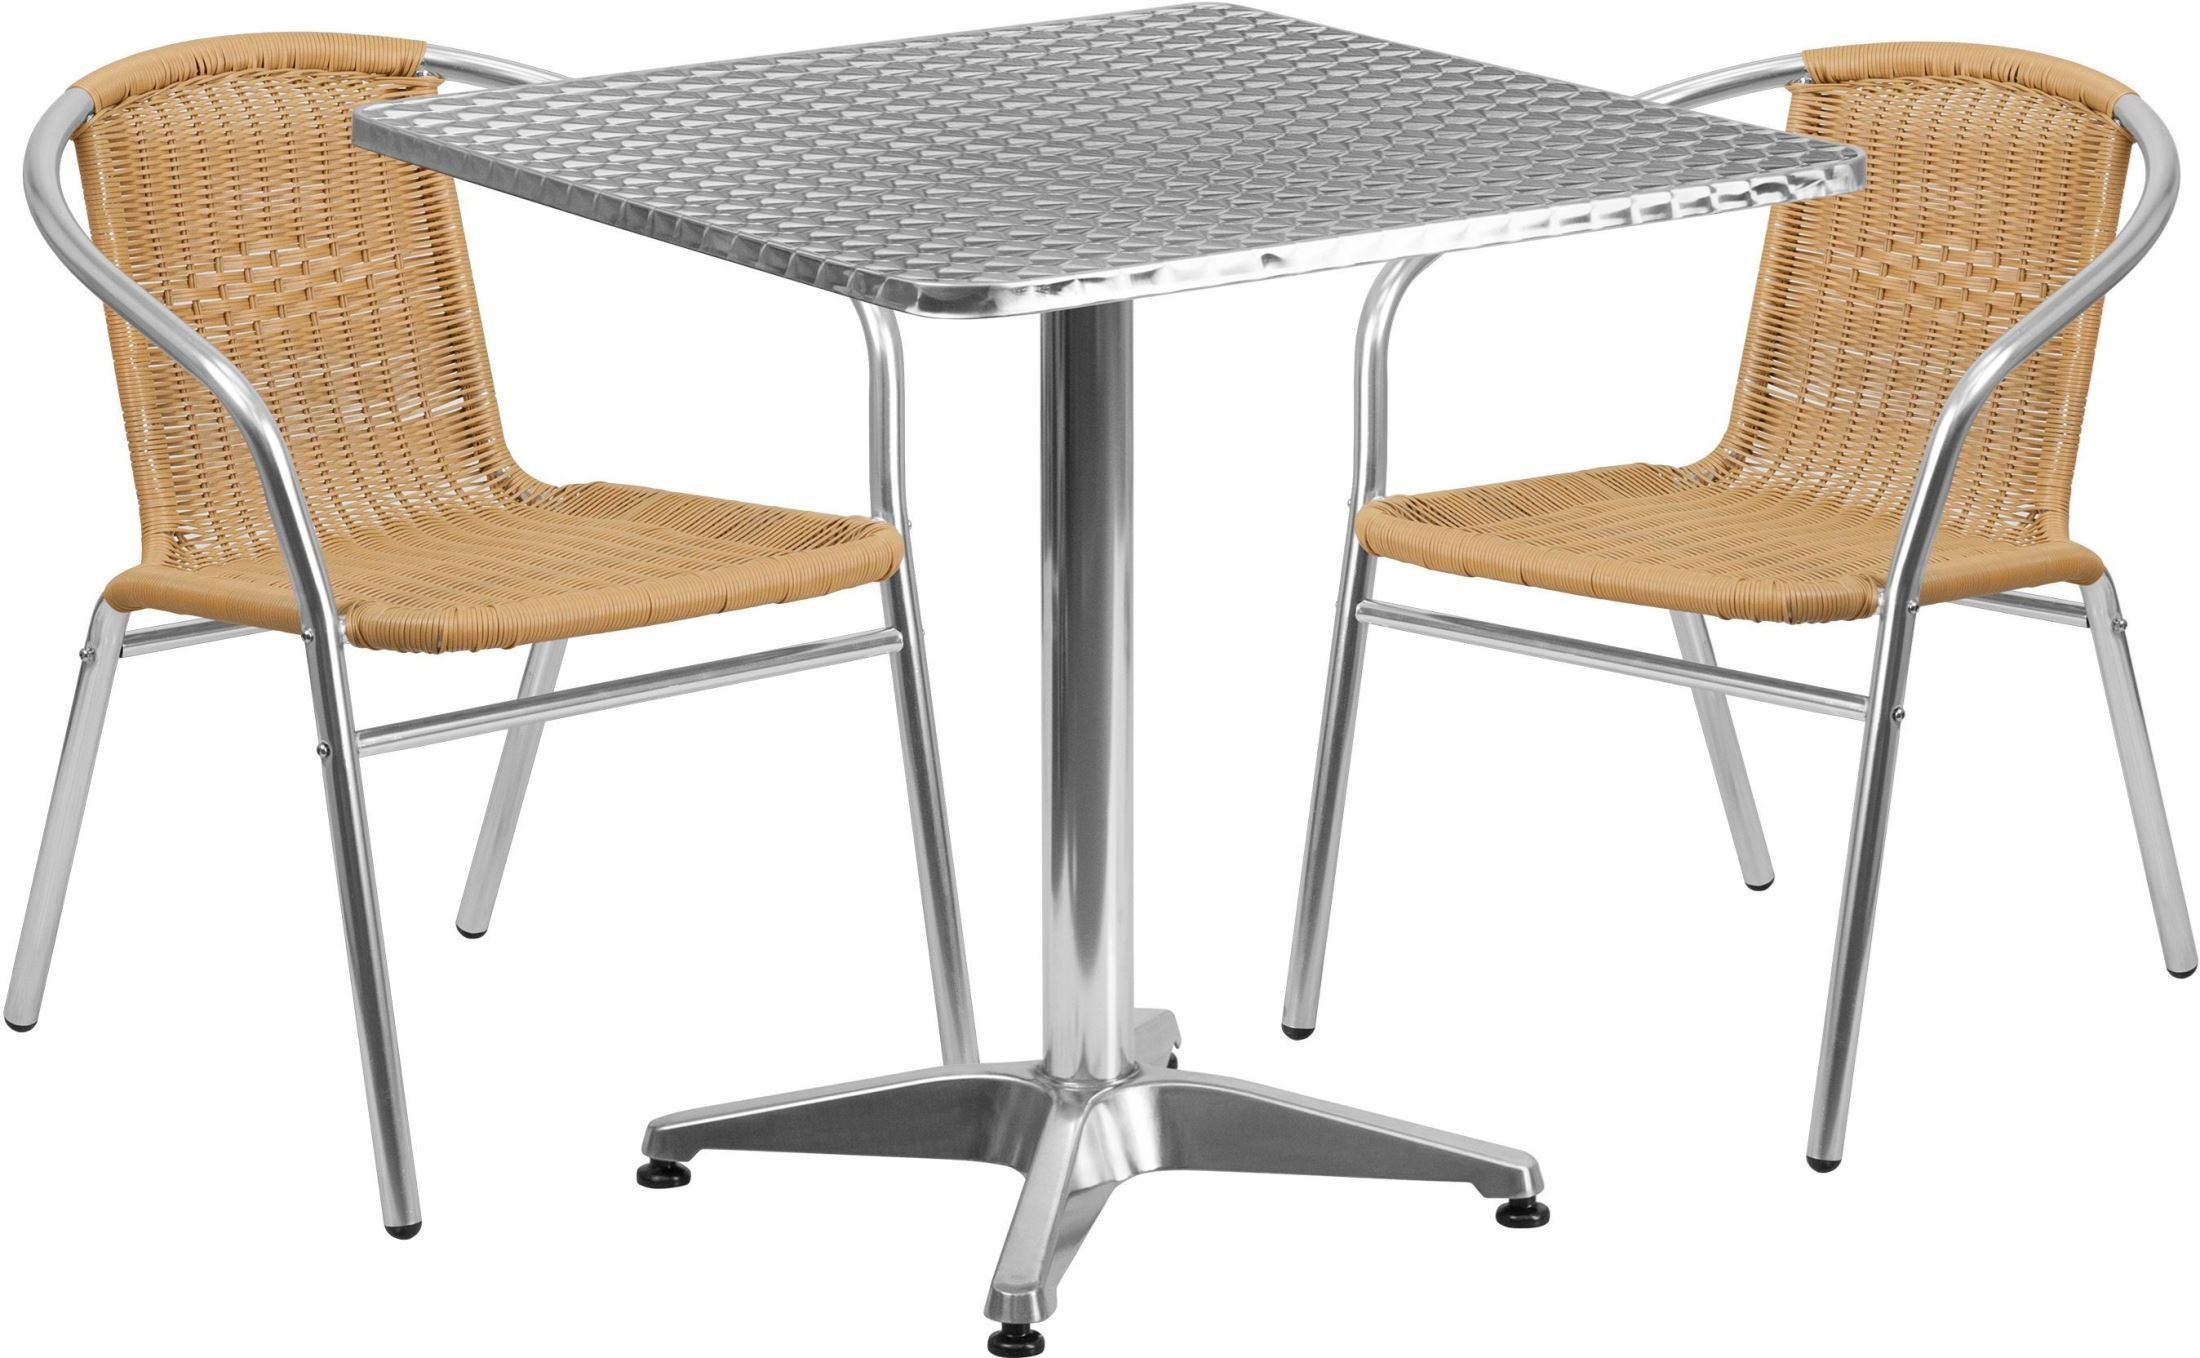 27 5 Square Aluminum Indoor Outdoor Table With 2 Beige